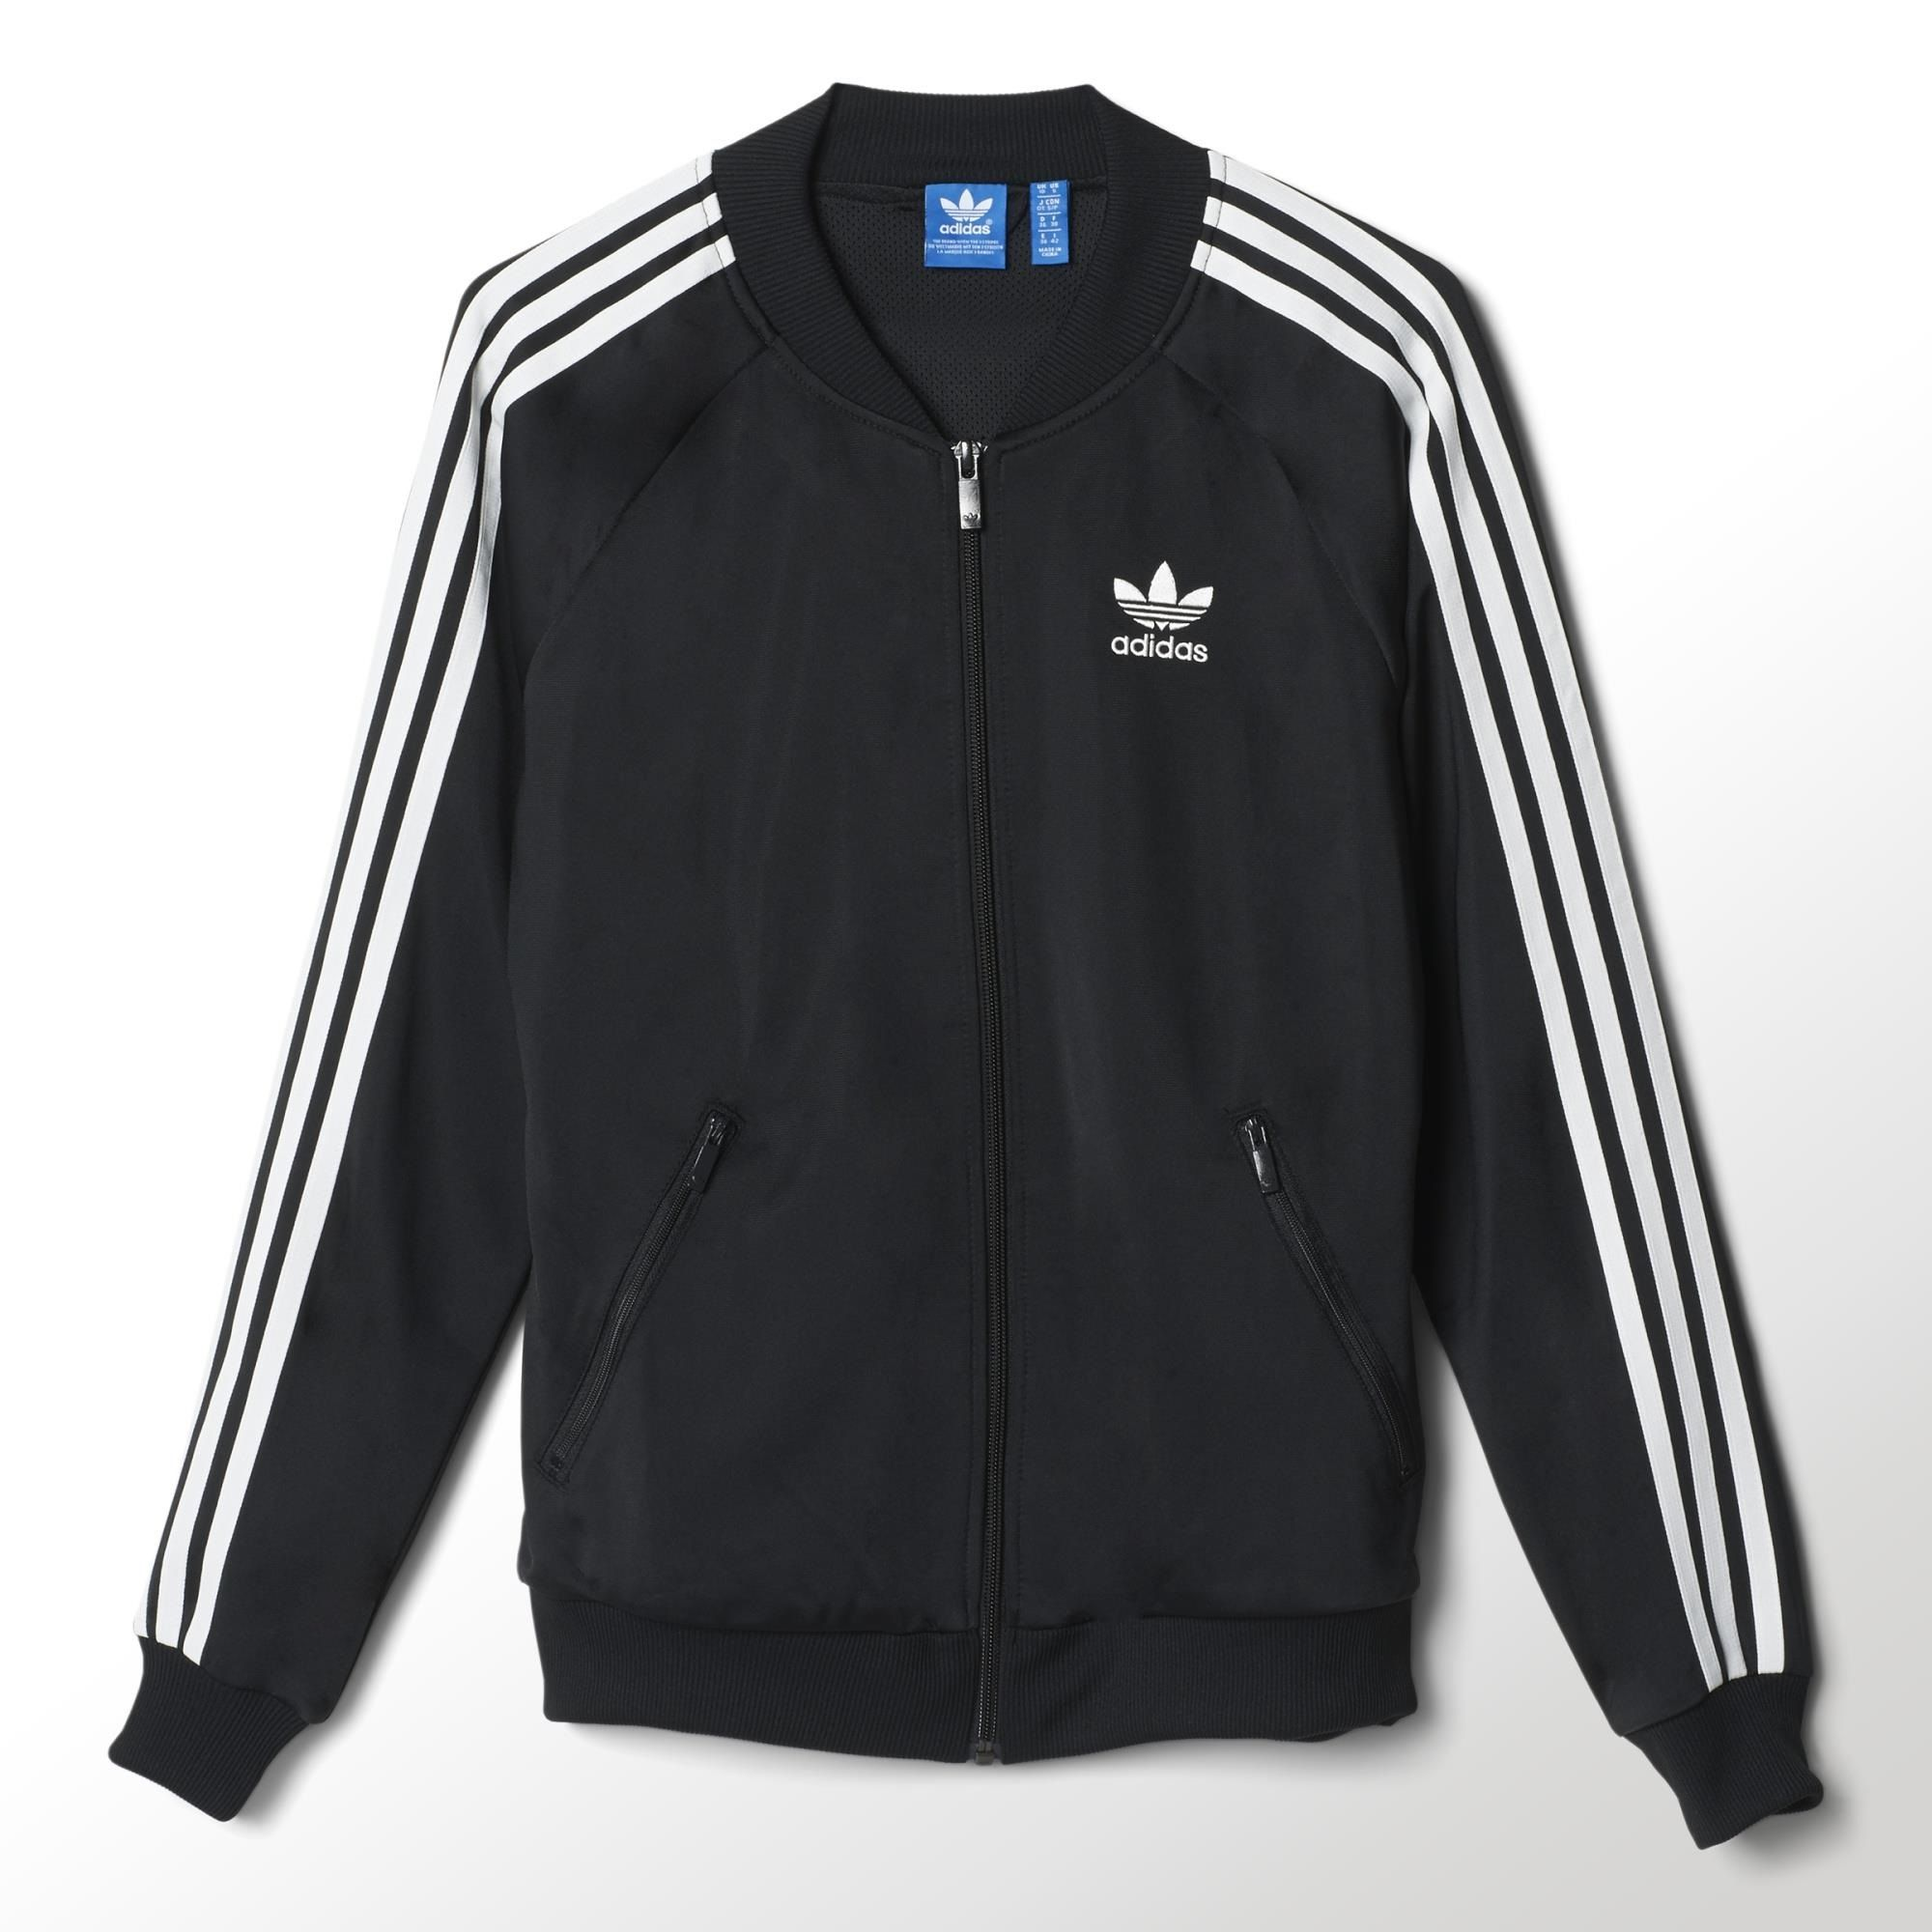 65932d8c06a347 This women s Superstar Track Top is a one-to-one reissue of one of adidas   most iconic styles. The track jacket comes in shiny tricot with all the  authentic ...